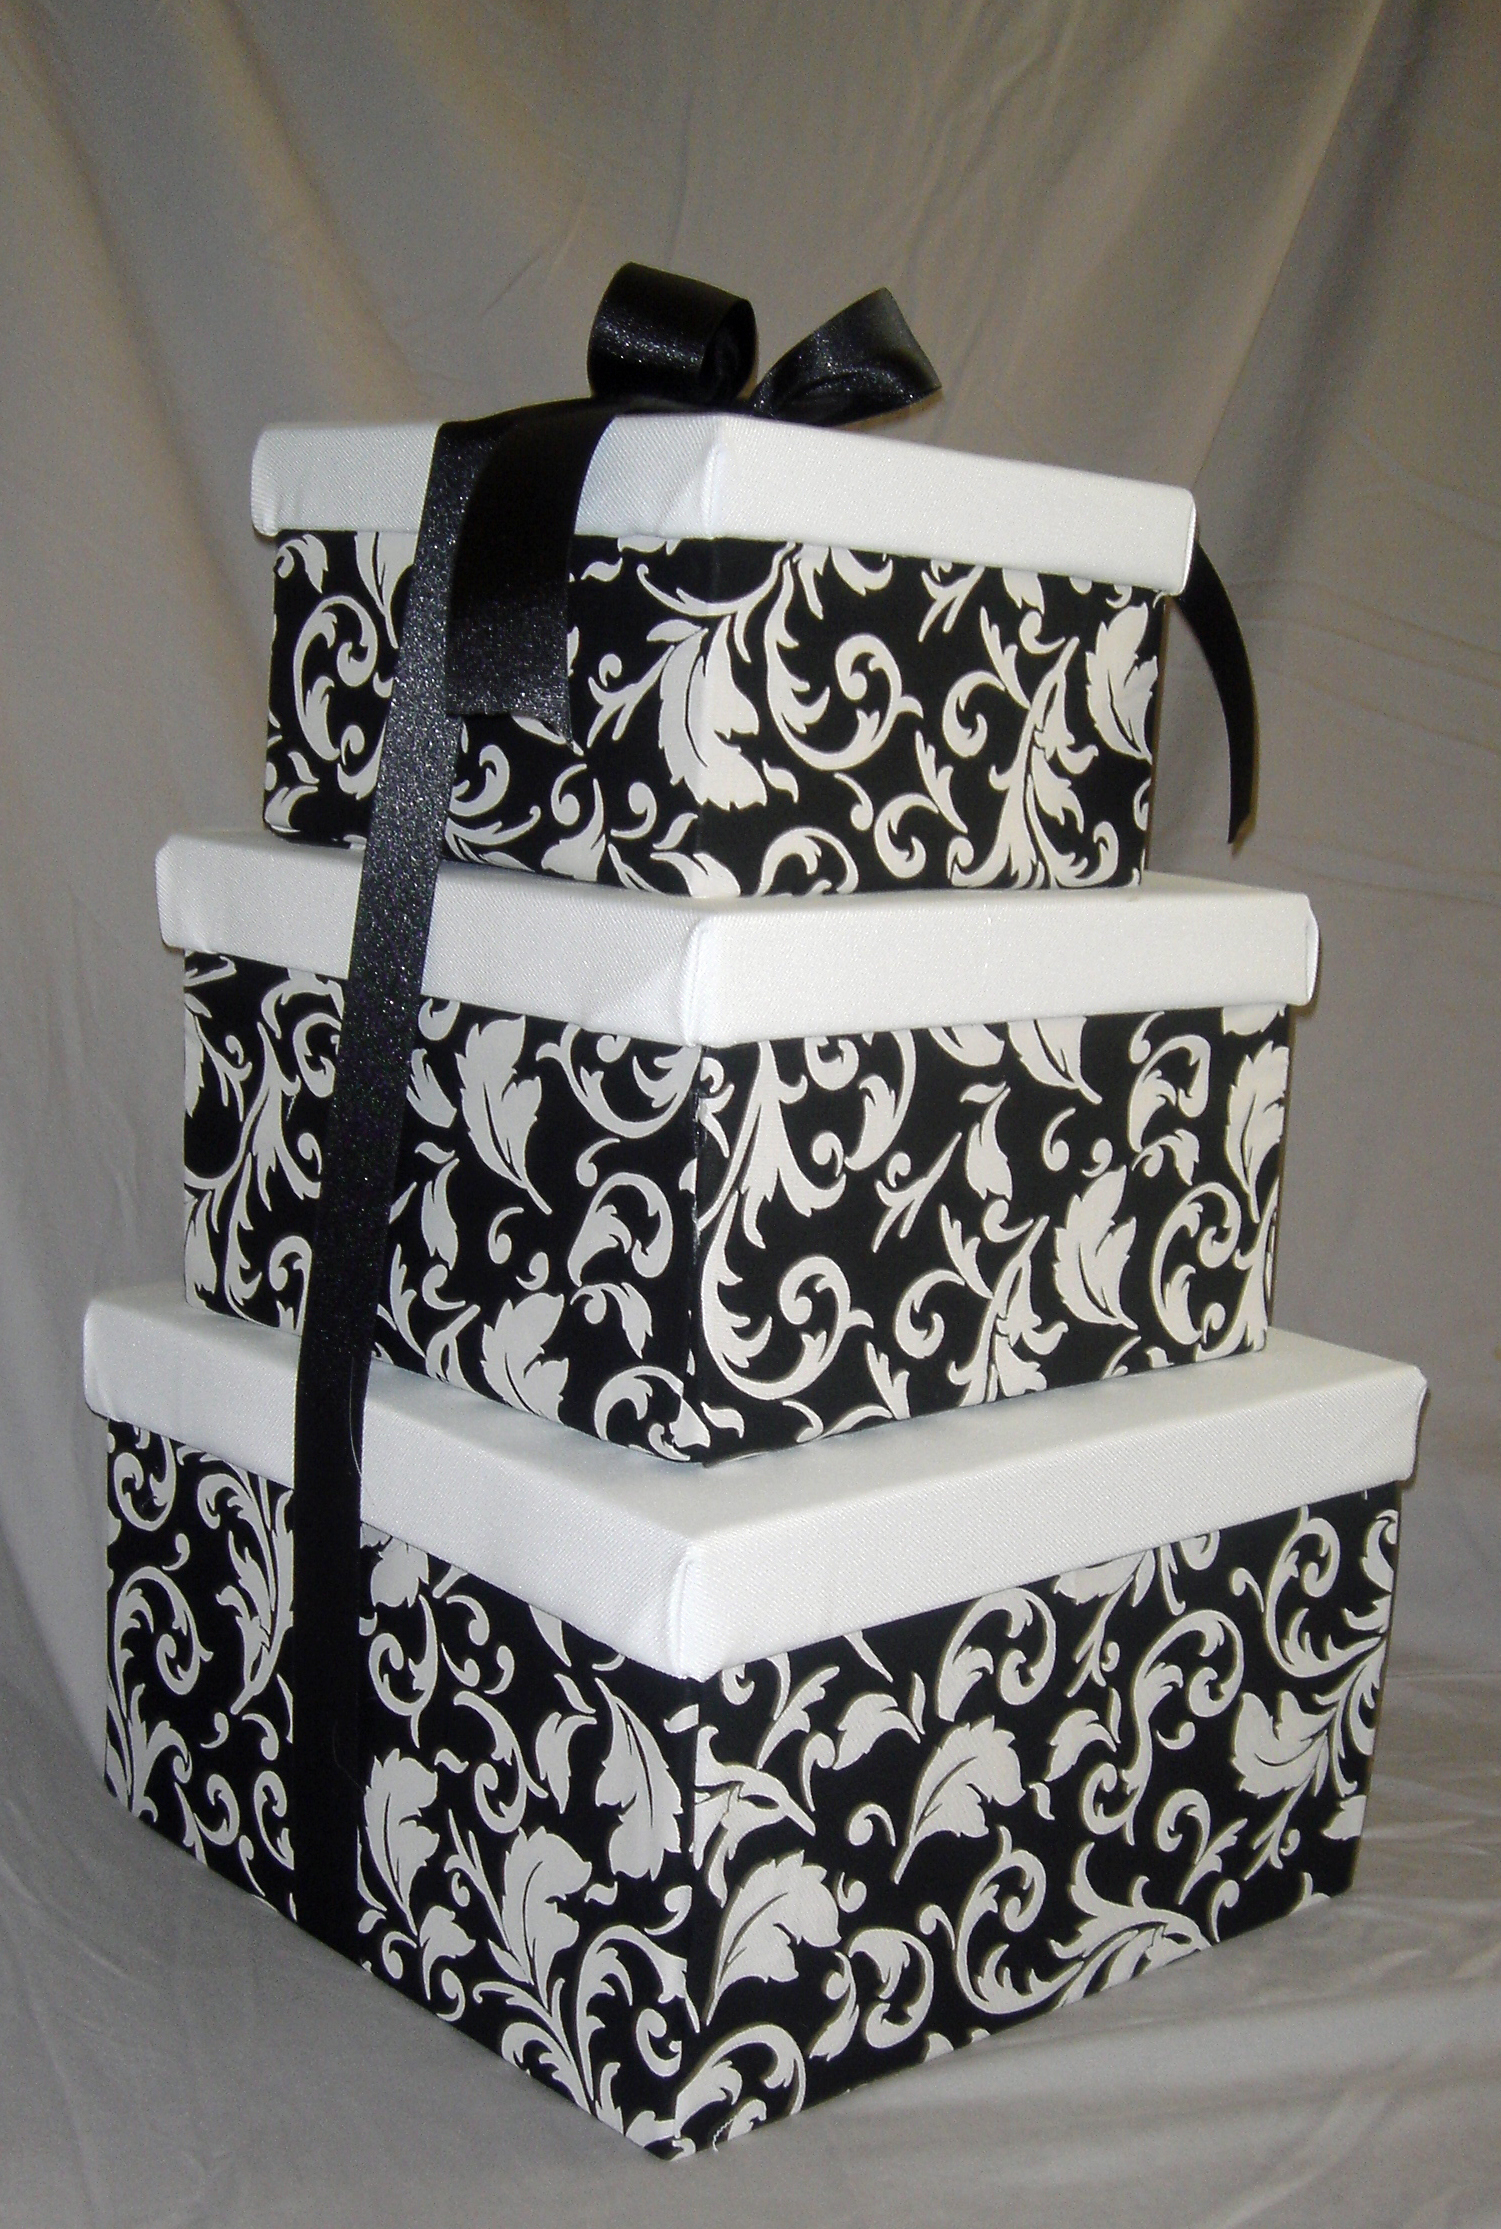 Box, Card, Damask, Big day boutique